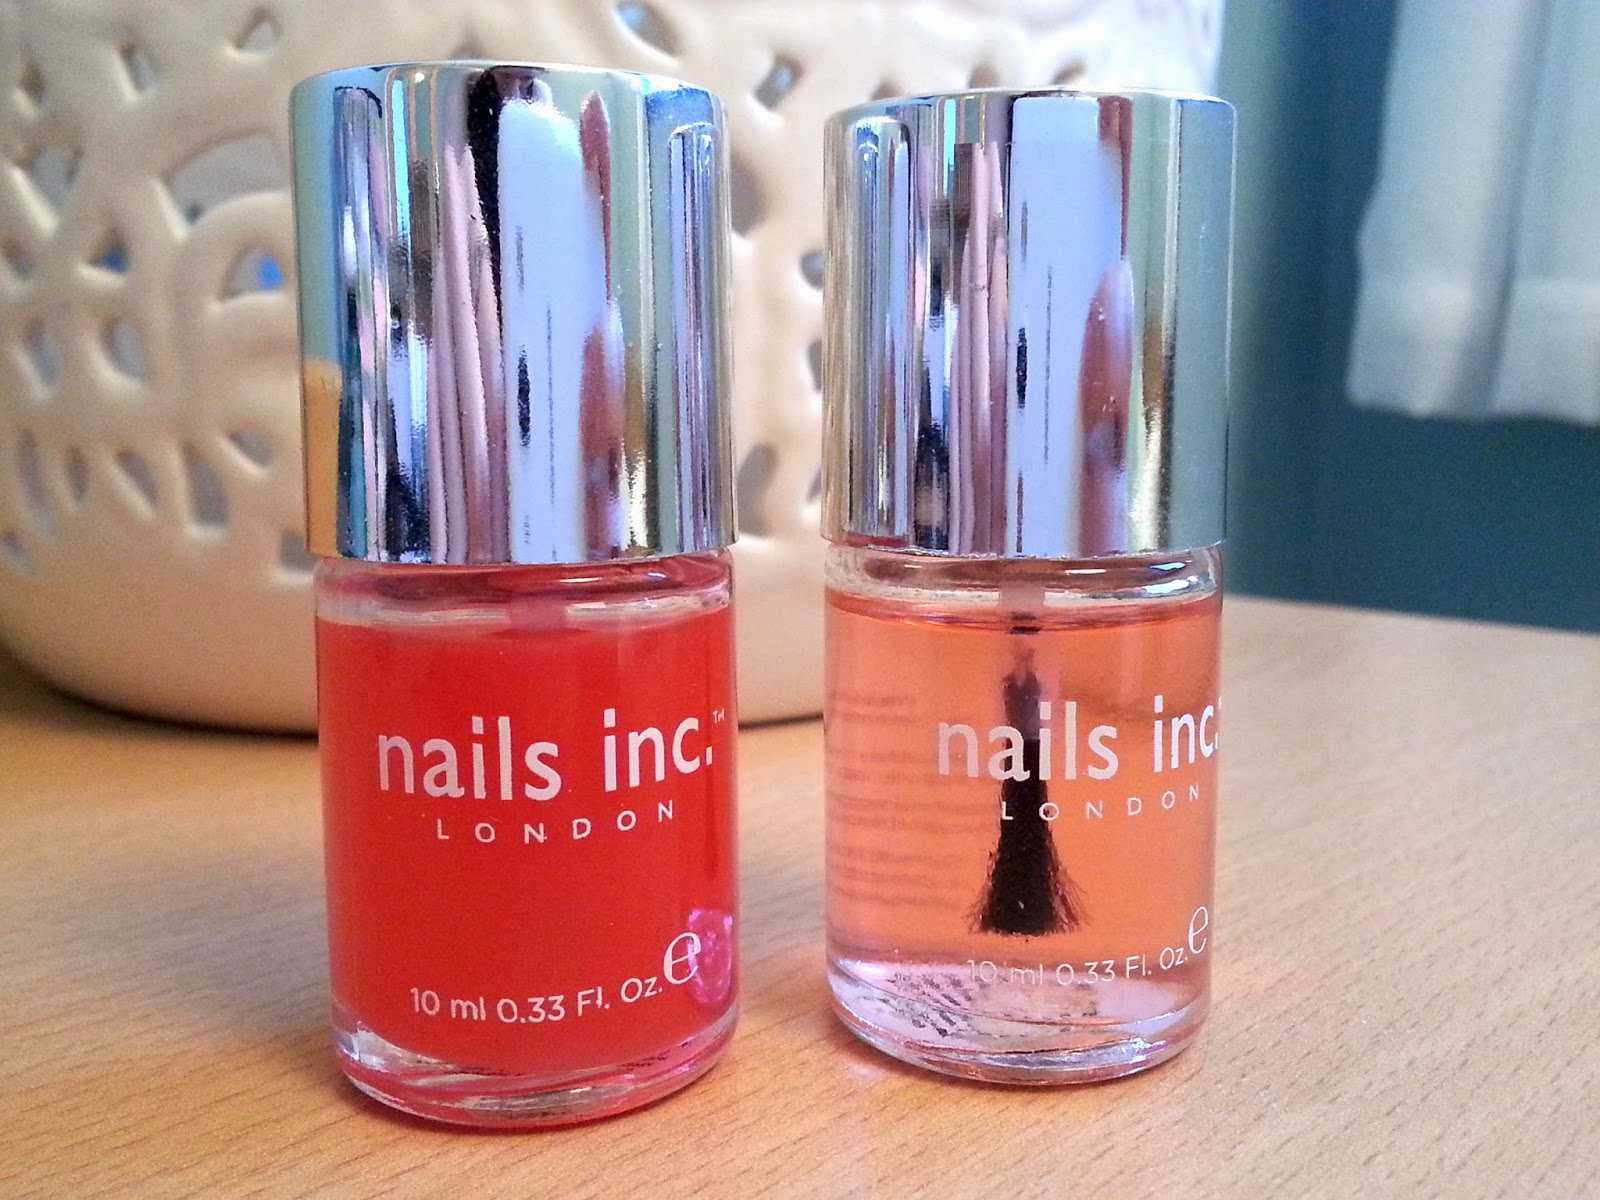 Nails Inc Kensington Caviar Top Coat Base Coat Review